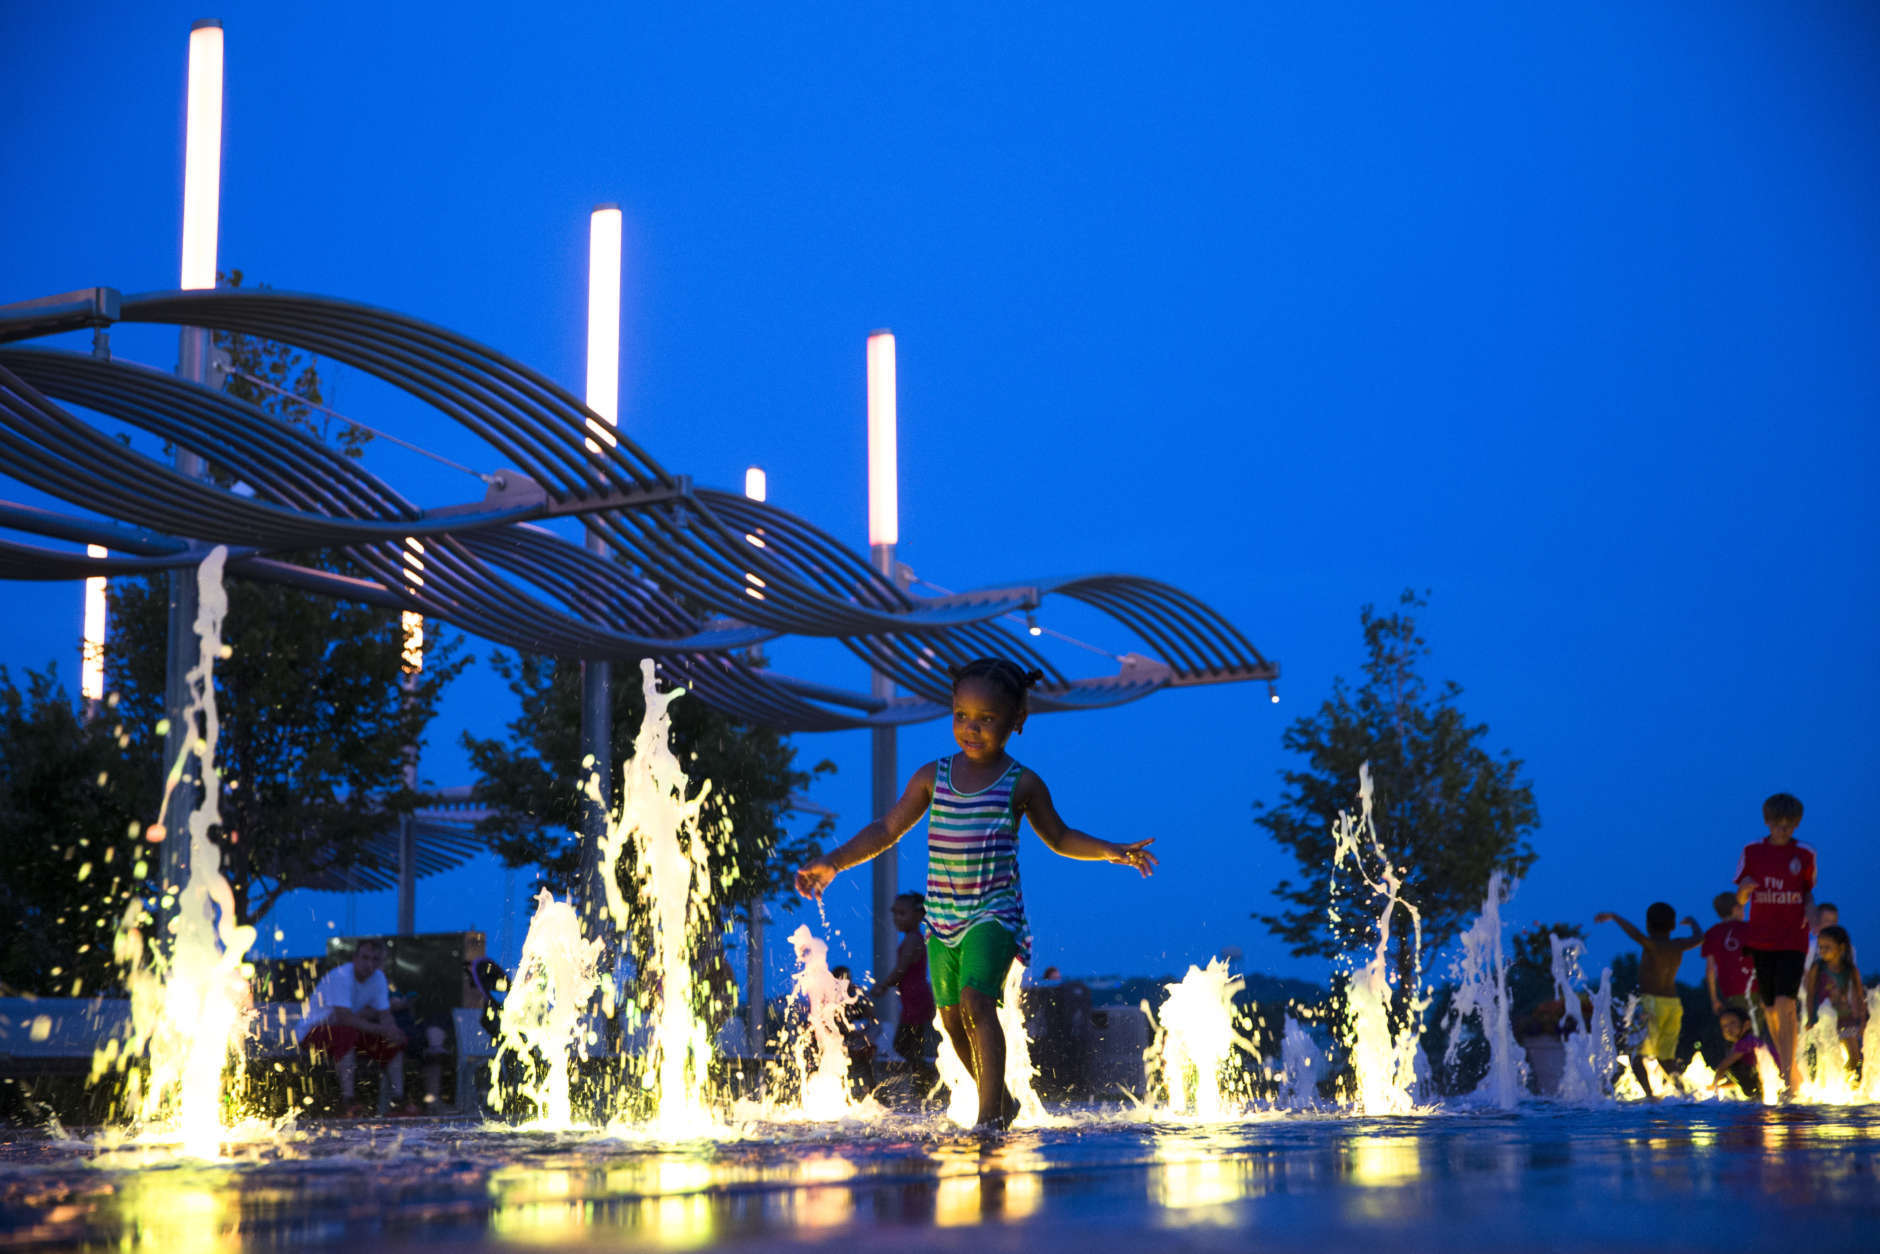 Children play in an illuminated fountain at Smale Riverfront Park in Cincinnati, Monday, June 22, 2015. The park is part of a five-phase revitalization of the Ohio riverfront as the downtown area undergoes a resurgence with investors and businesses moving into once vacant lots and buildings. (AP Photo/John Minchillo)